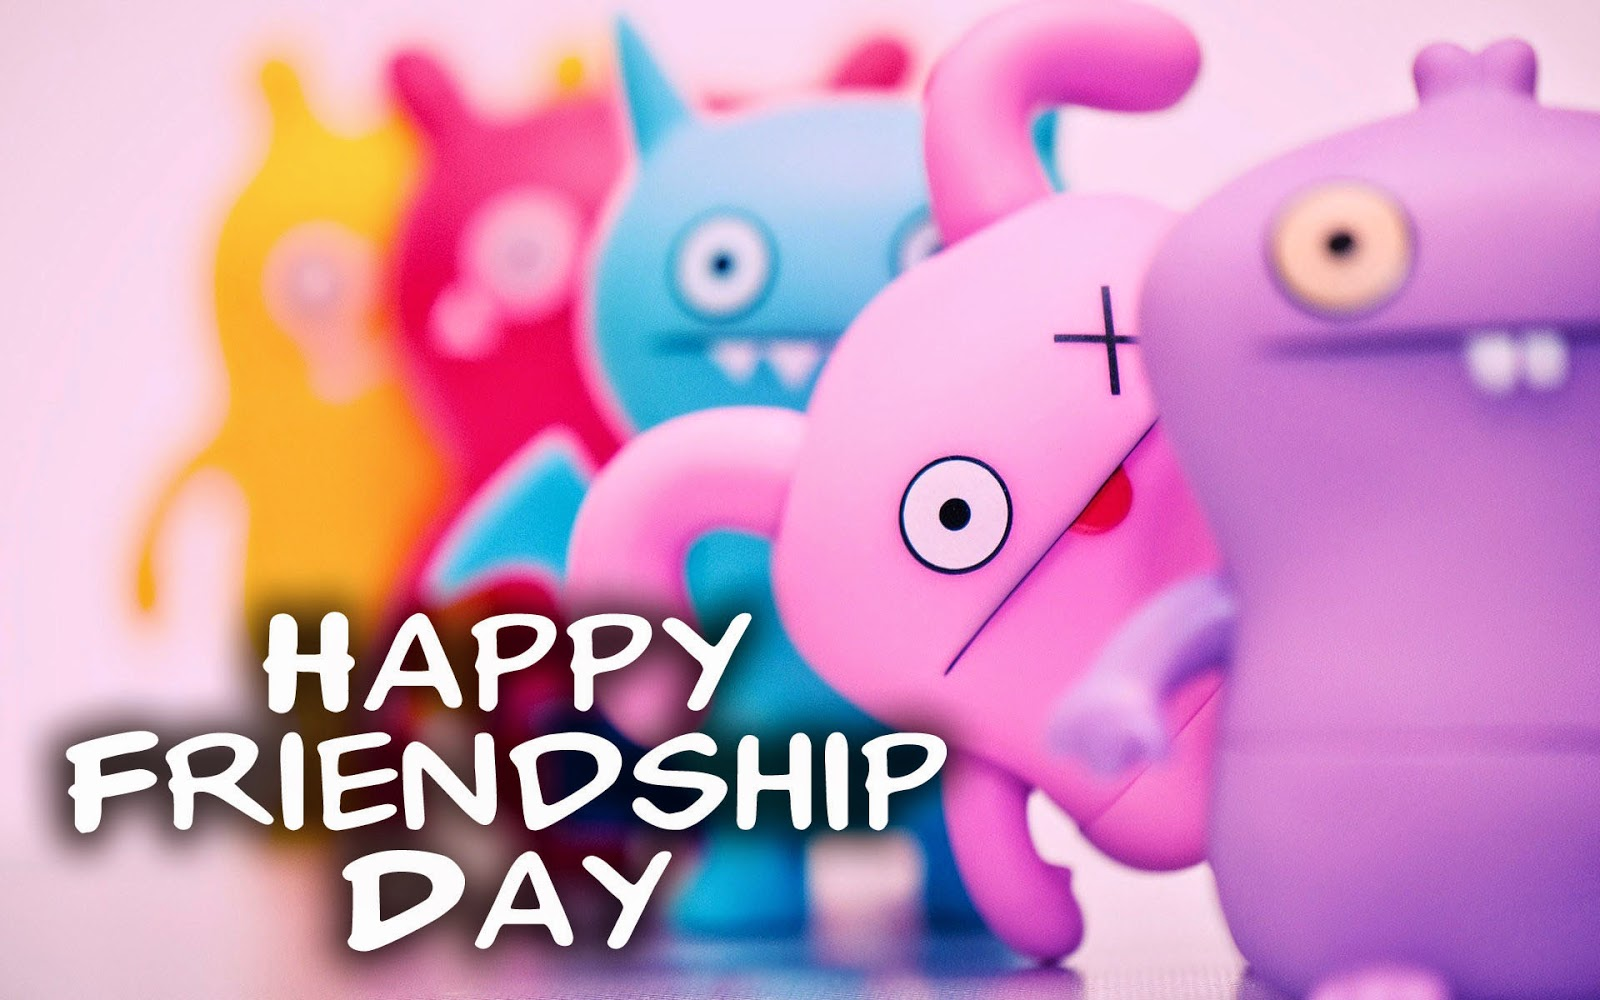 Friendship Day Pics With Quotes: 10 Beautiful Friendship Day Quotes To Celebrate This